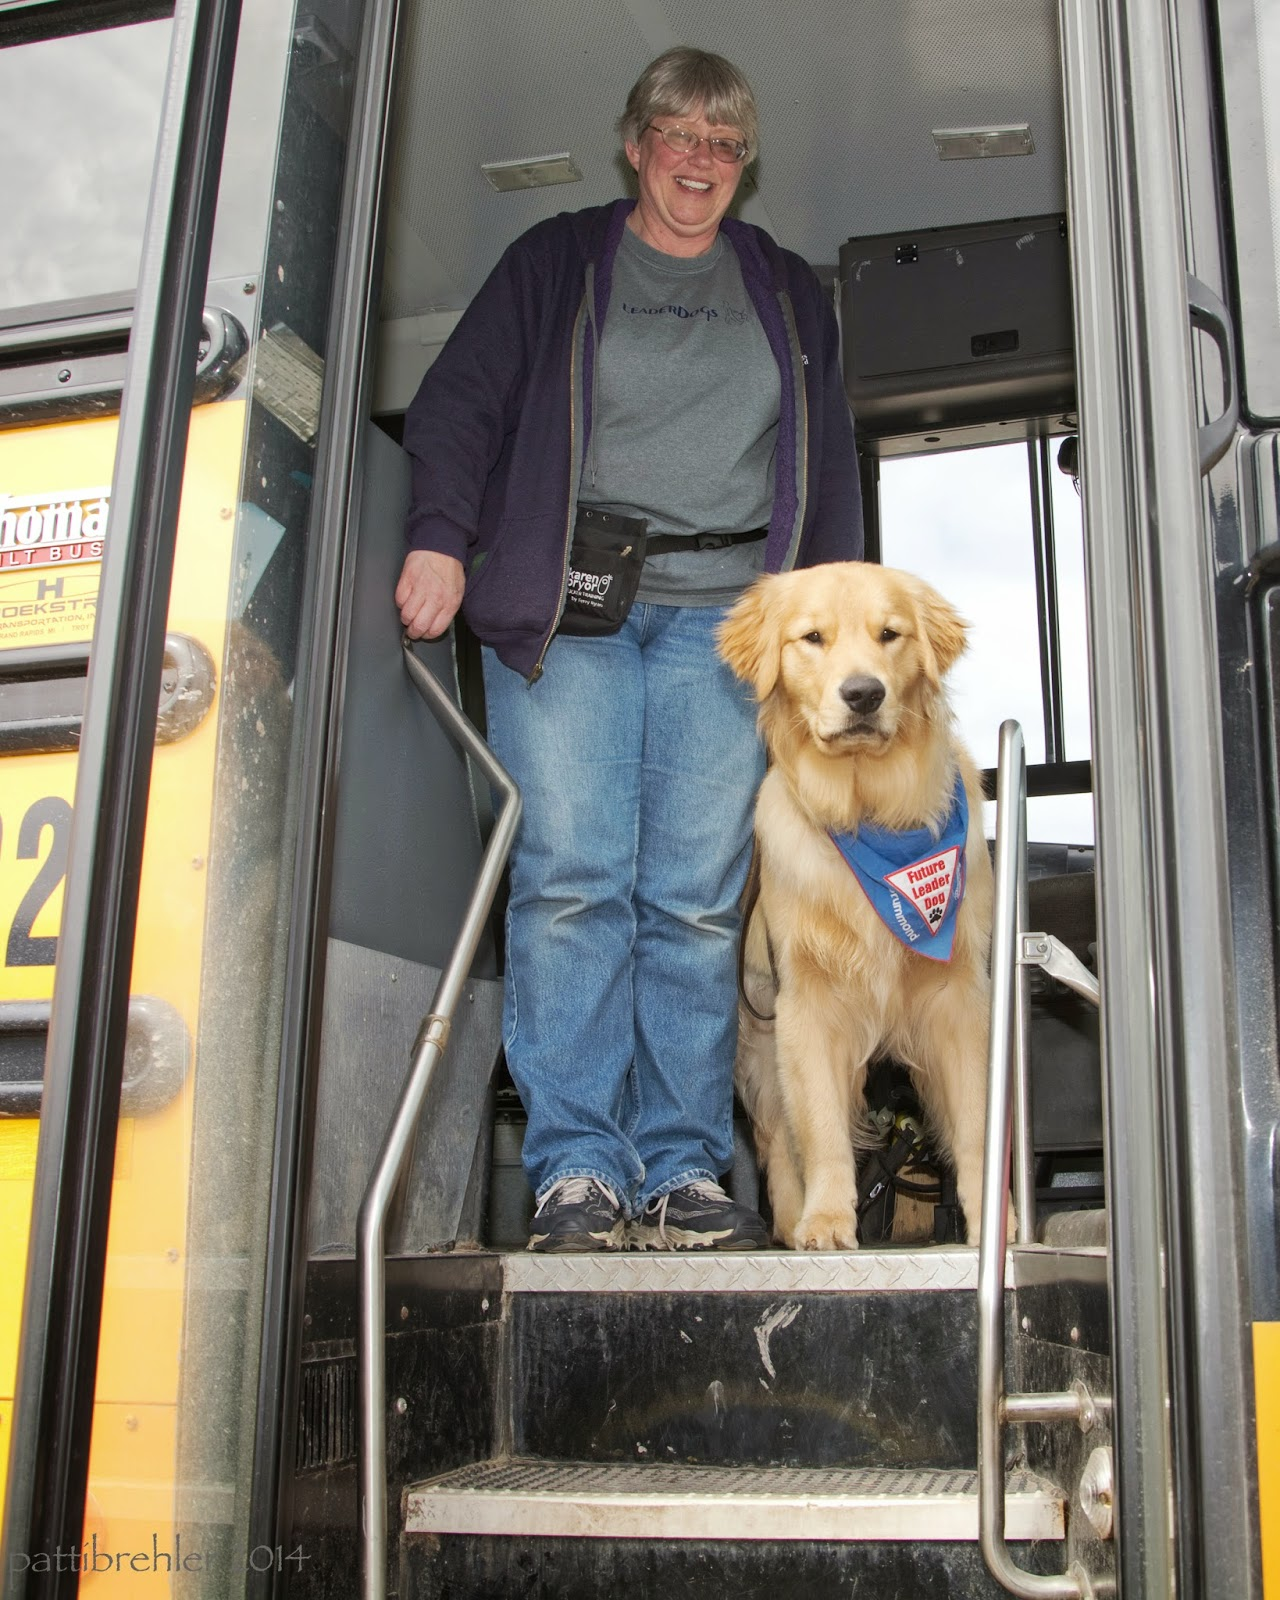 A woman with short grey hair and wearing blue jeans a grey t-shirt and a purple zippered sweatshirt open is standing at the top of the steps coming out of a school bus. She is wearing a black treat bag on her waist and smiling at the camera. A large golden retriever puppy is standing at her left side looking out at the camera. He is wearing a blue Future Leader Dog bandana.